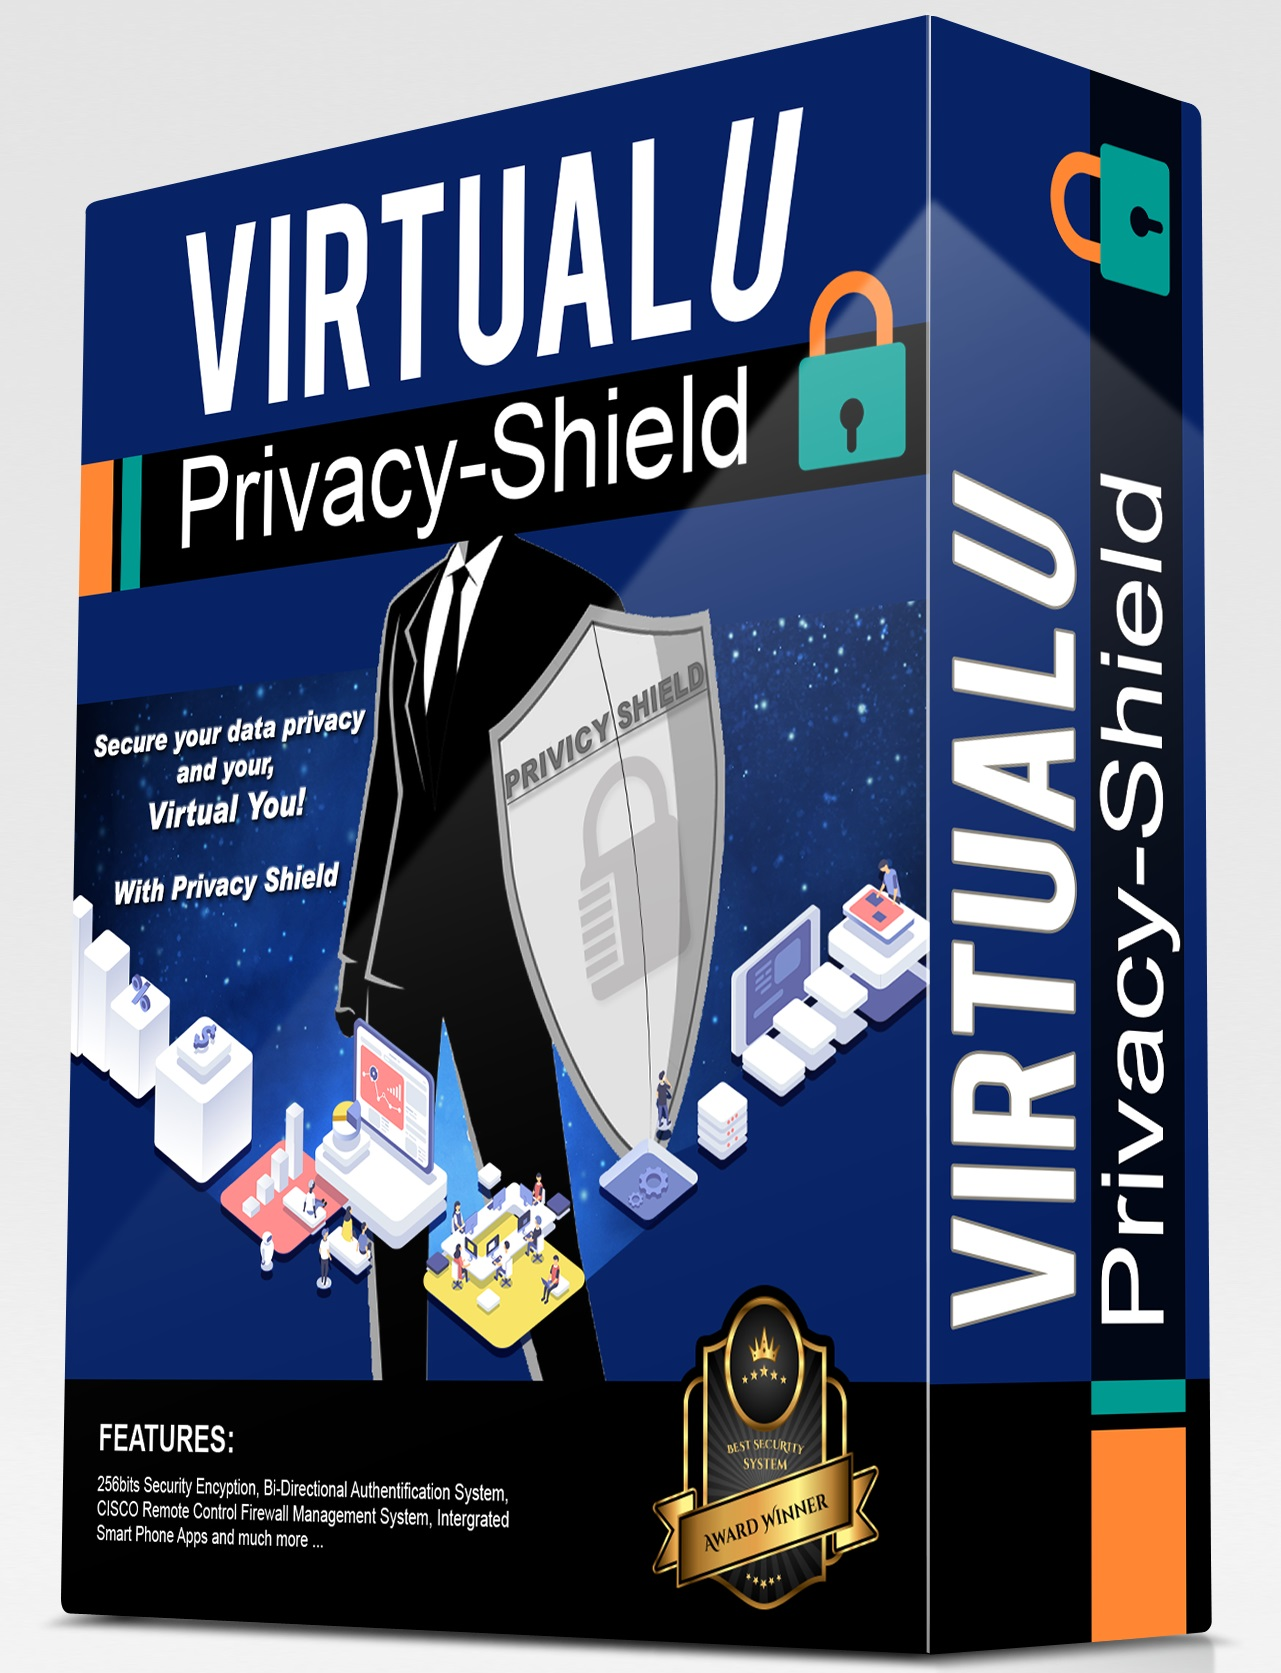 VirtualU Privacy-Shield